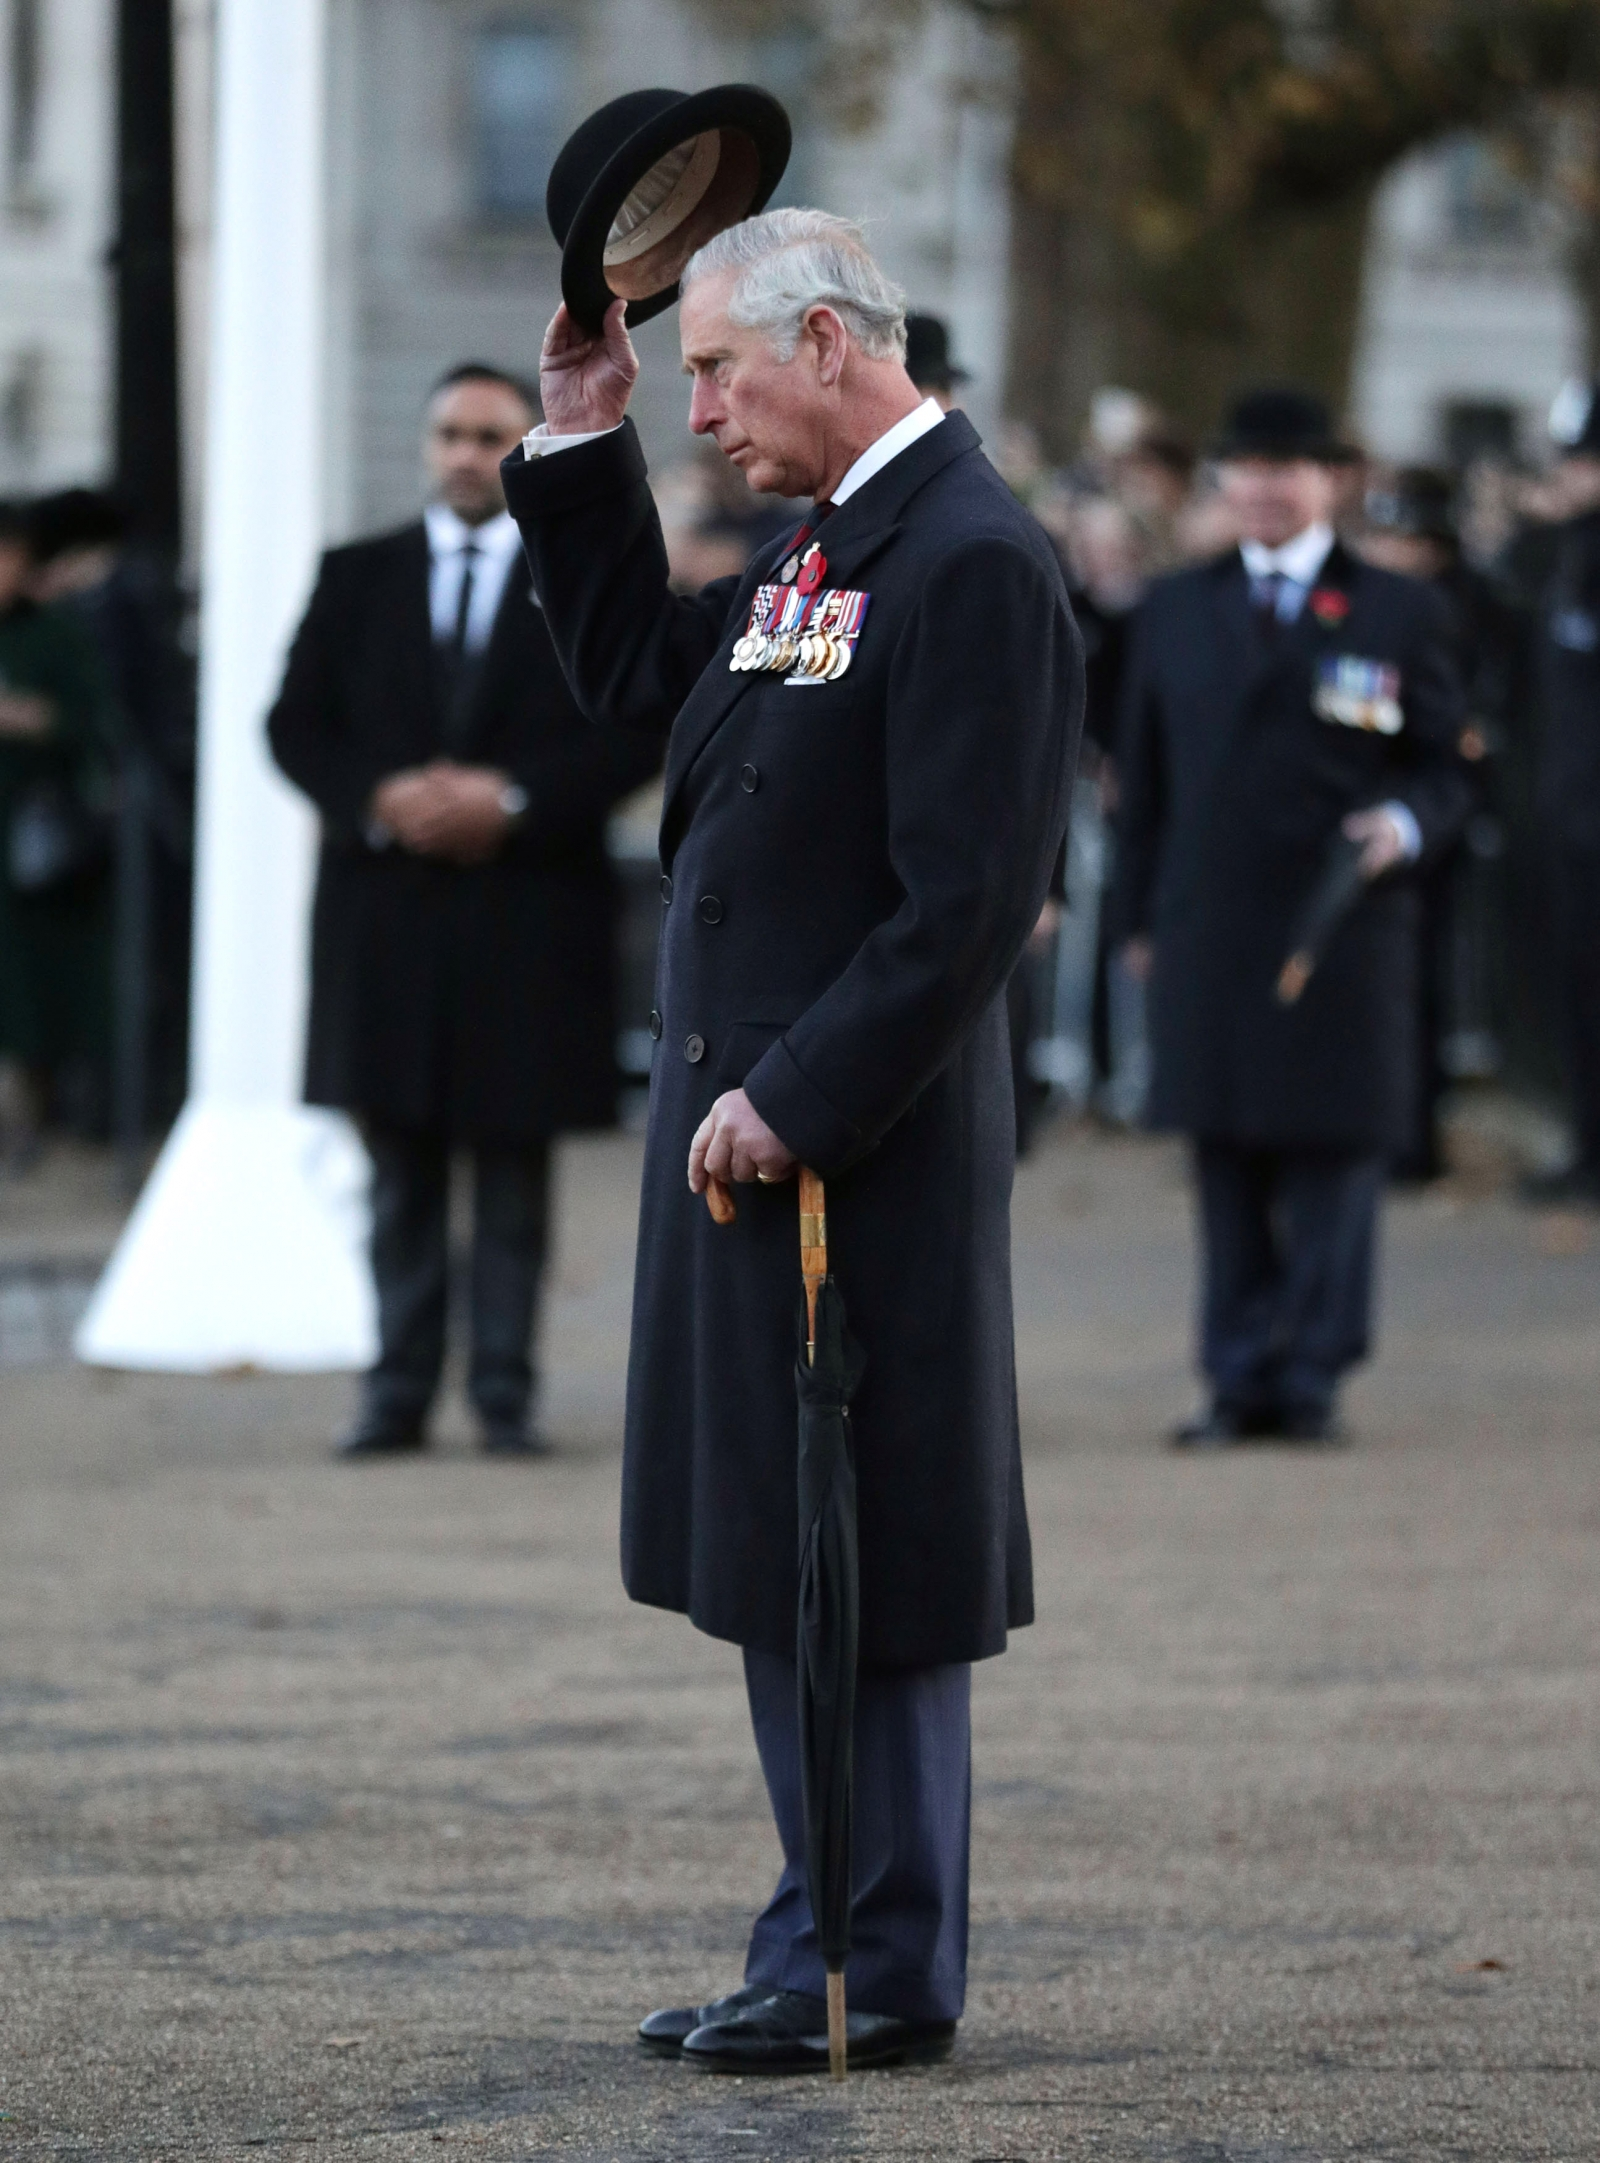 https://d.ibtimes.co.uk/en/full/1566632/prince-charles-doffs-his-hat.jpg